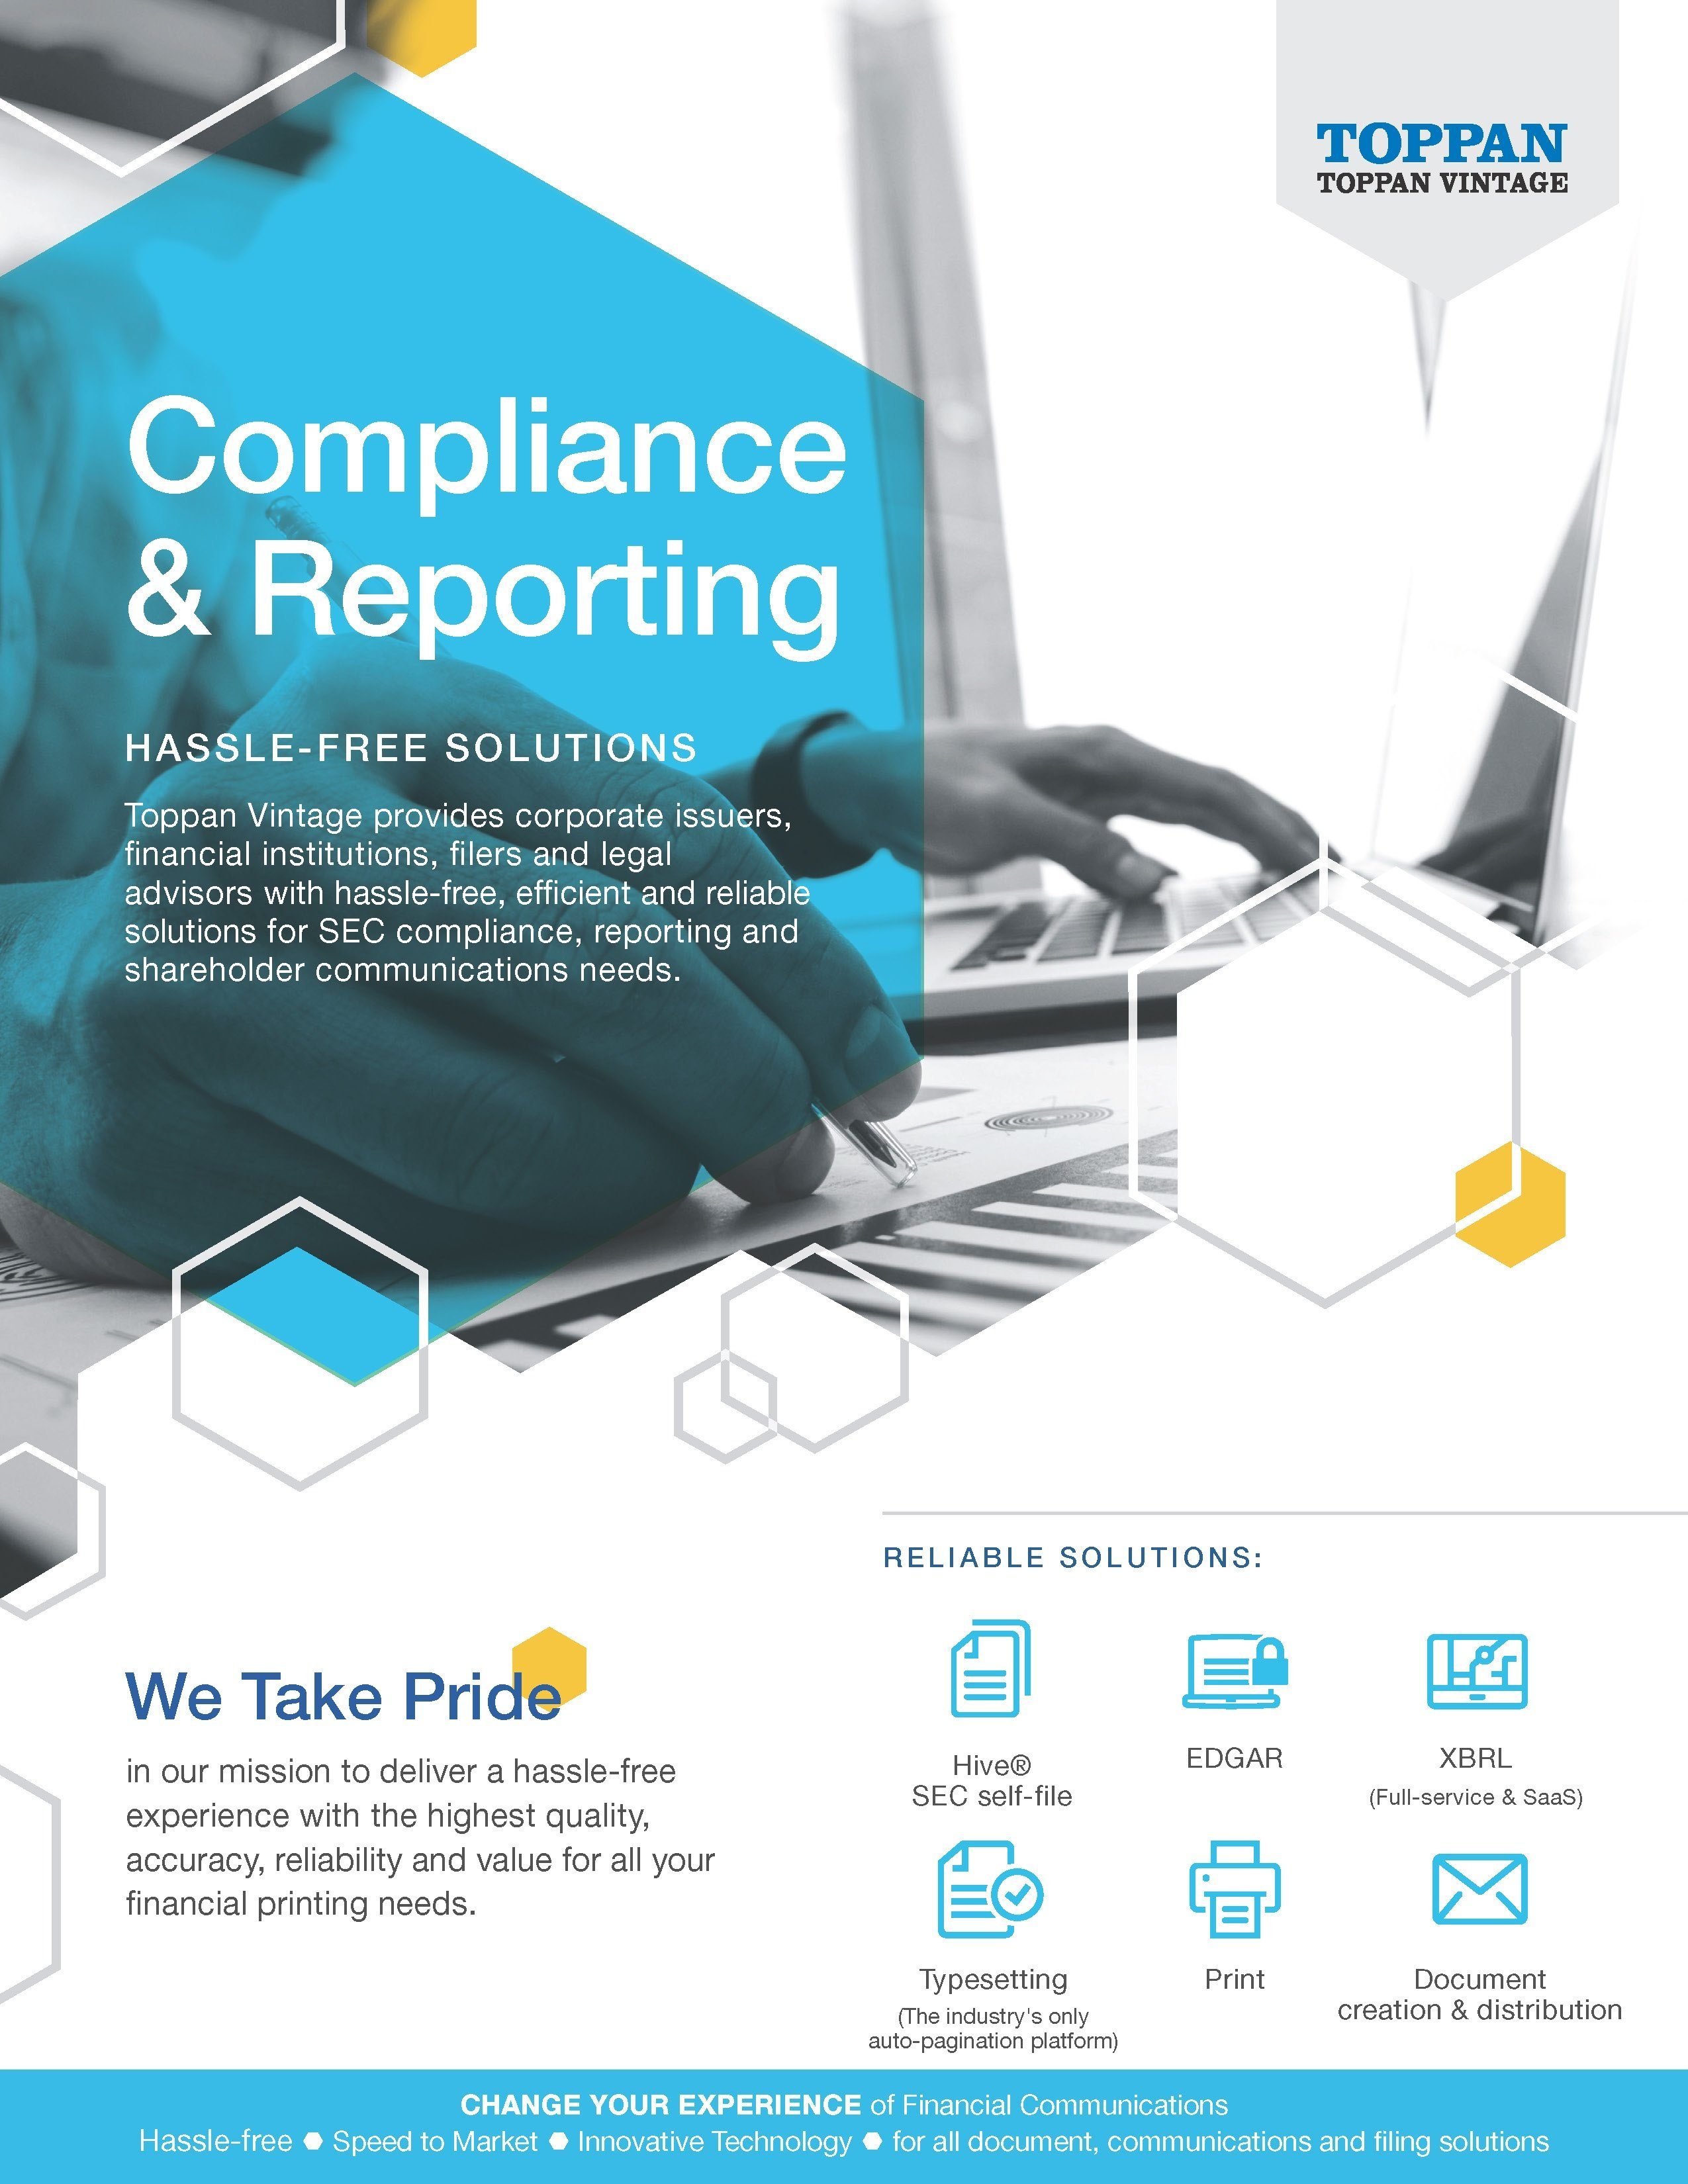 ComplianceReporting_ToppanVintage_final_COVER_Page_1.jpg